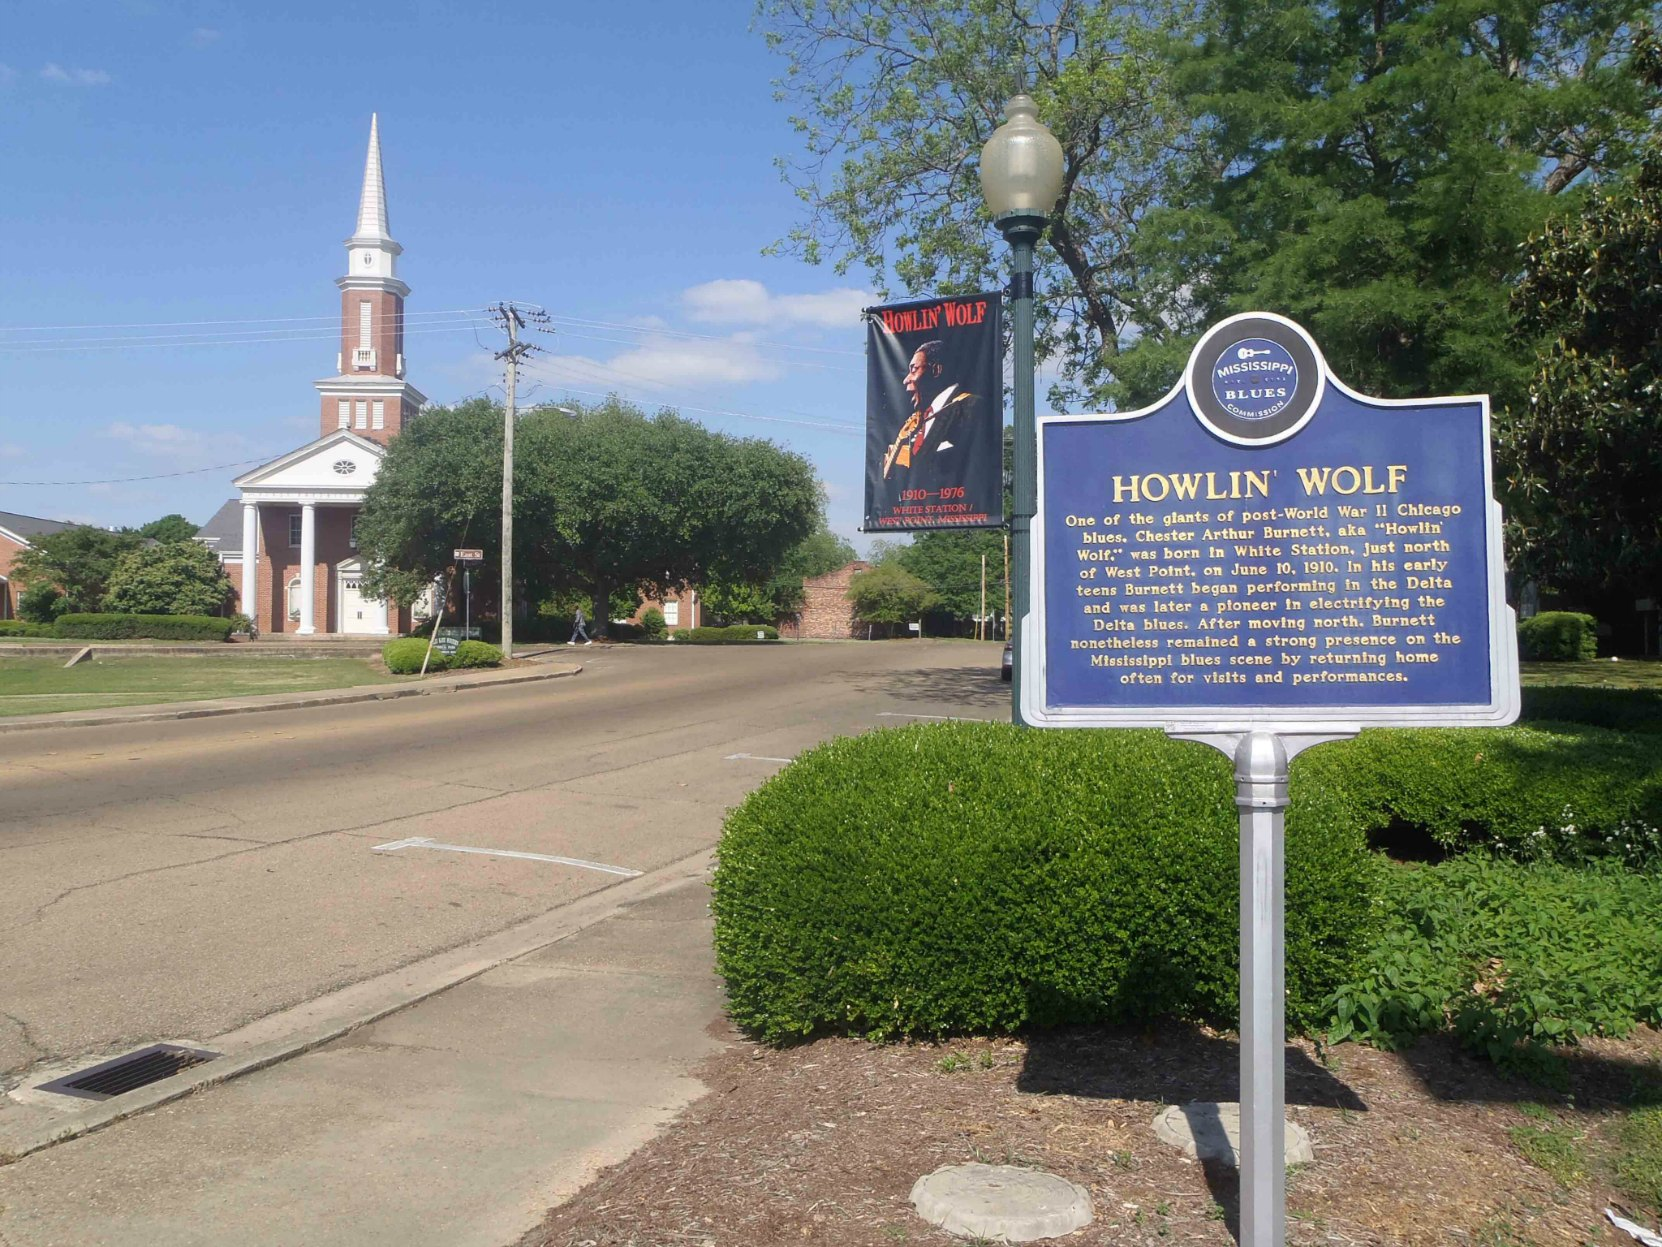 Mississippi Blues Trail marker for Howlin' Wolf, West Point, Clay County, Mississippi